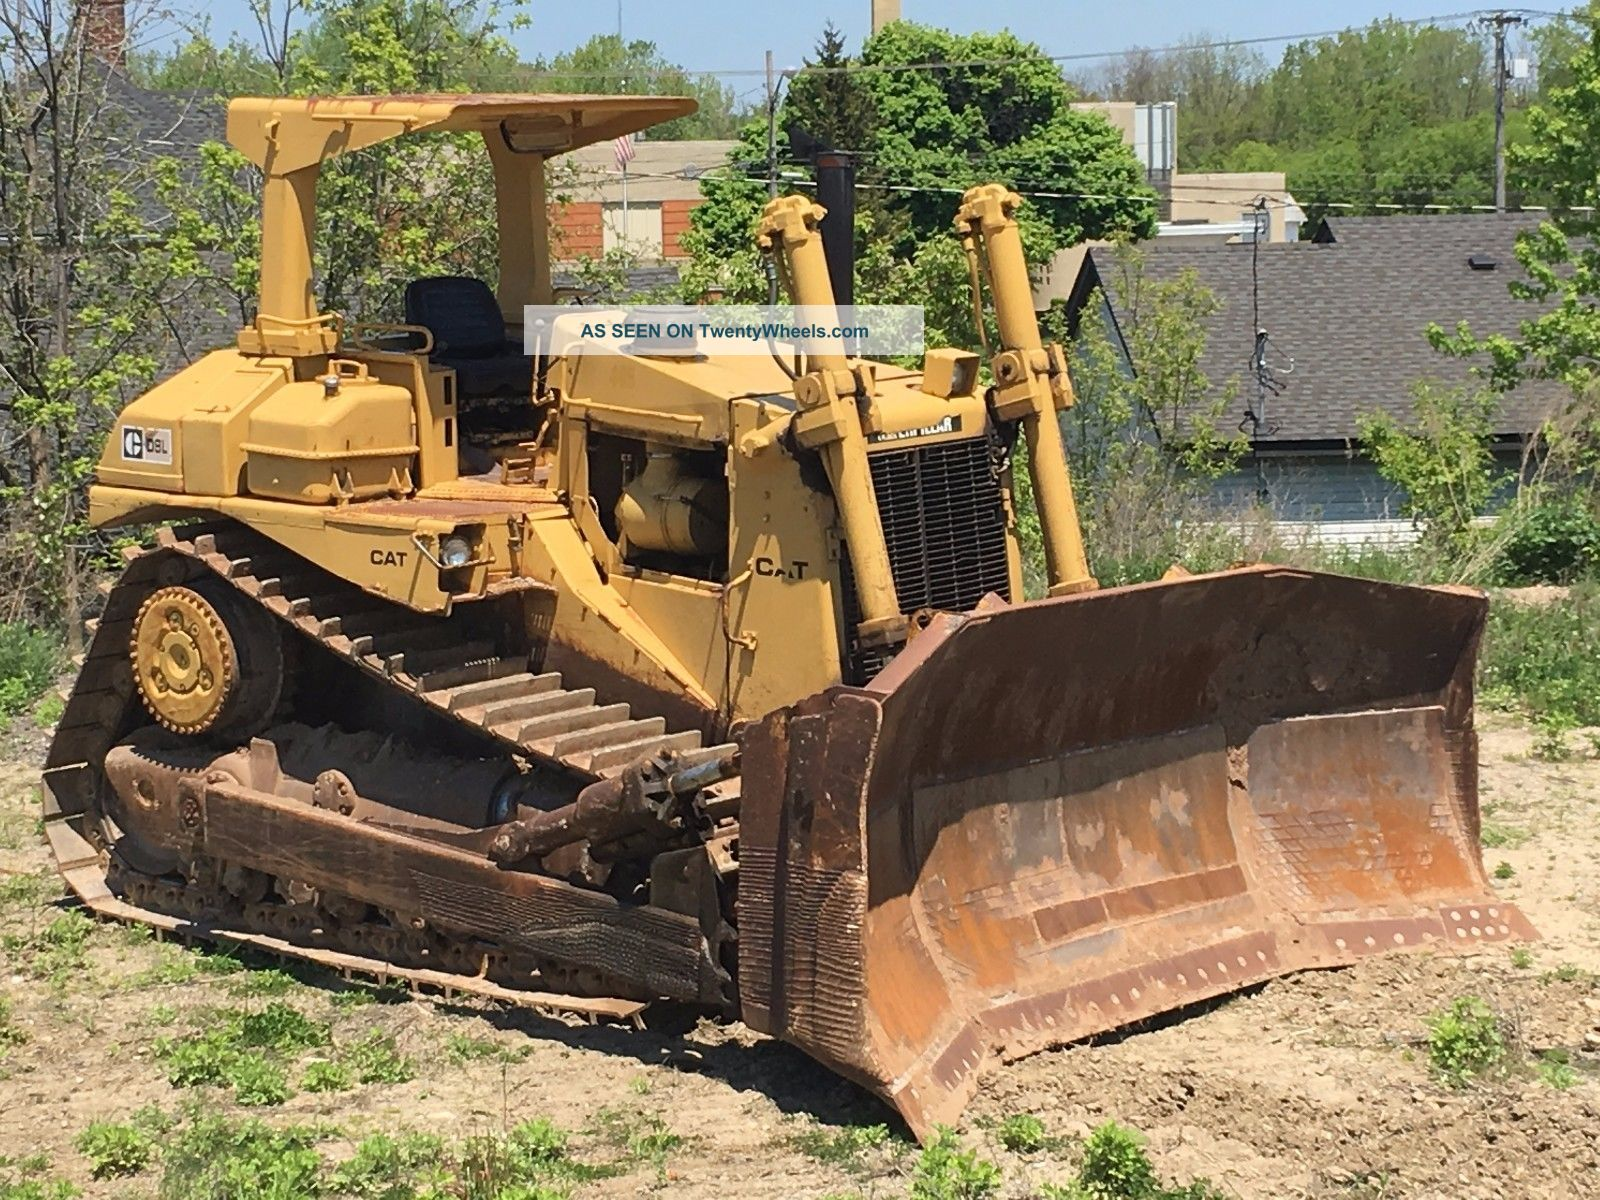 Caterpillar D8 Bulldozer Cat D8l Dozer Crawler Dozers & Loaders photo